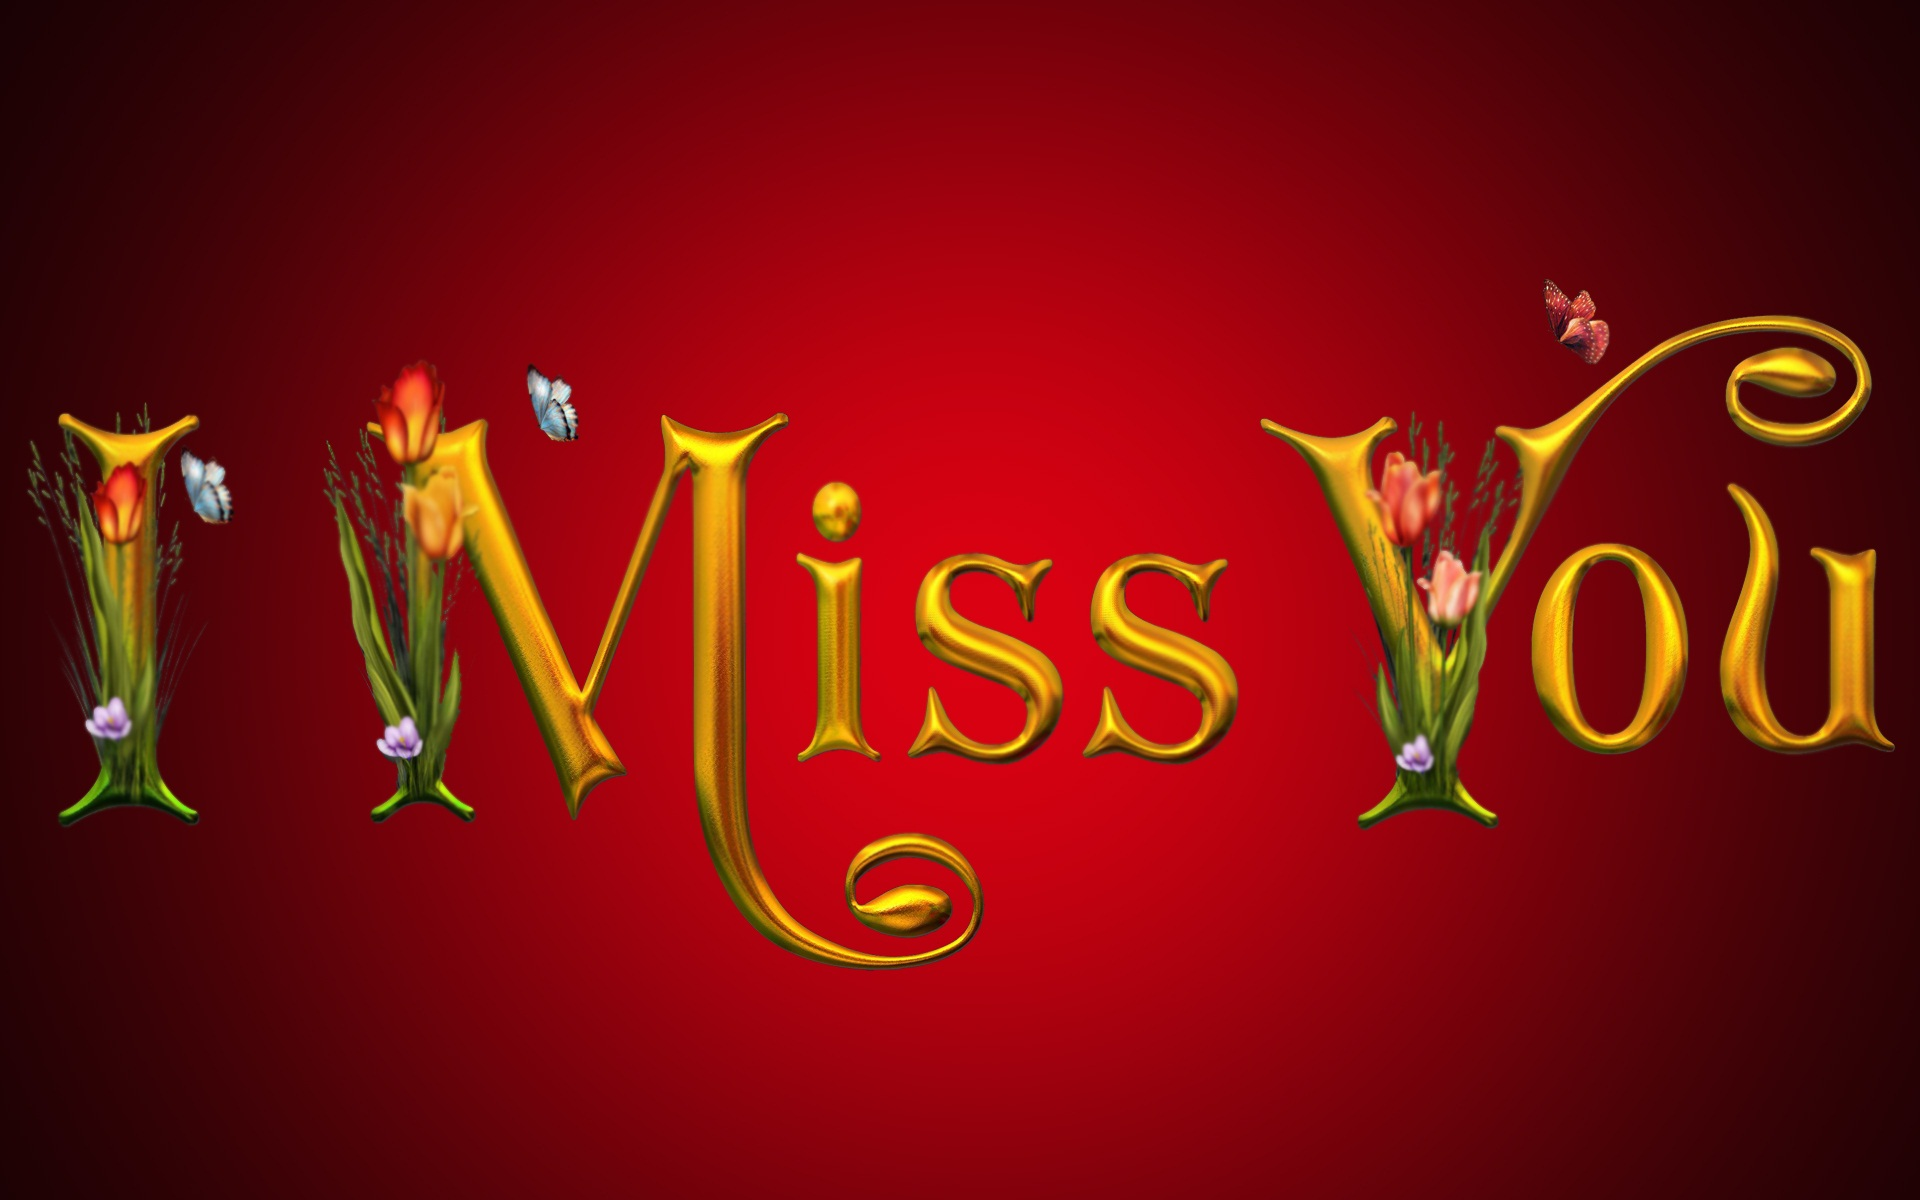 I miss you full HD awesome wallpaper Beautiful hd wallpaper 1920x1200